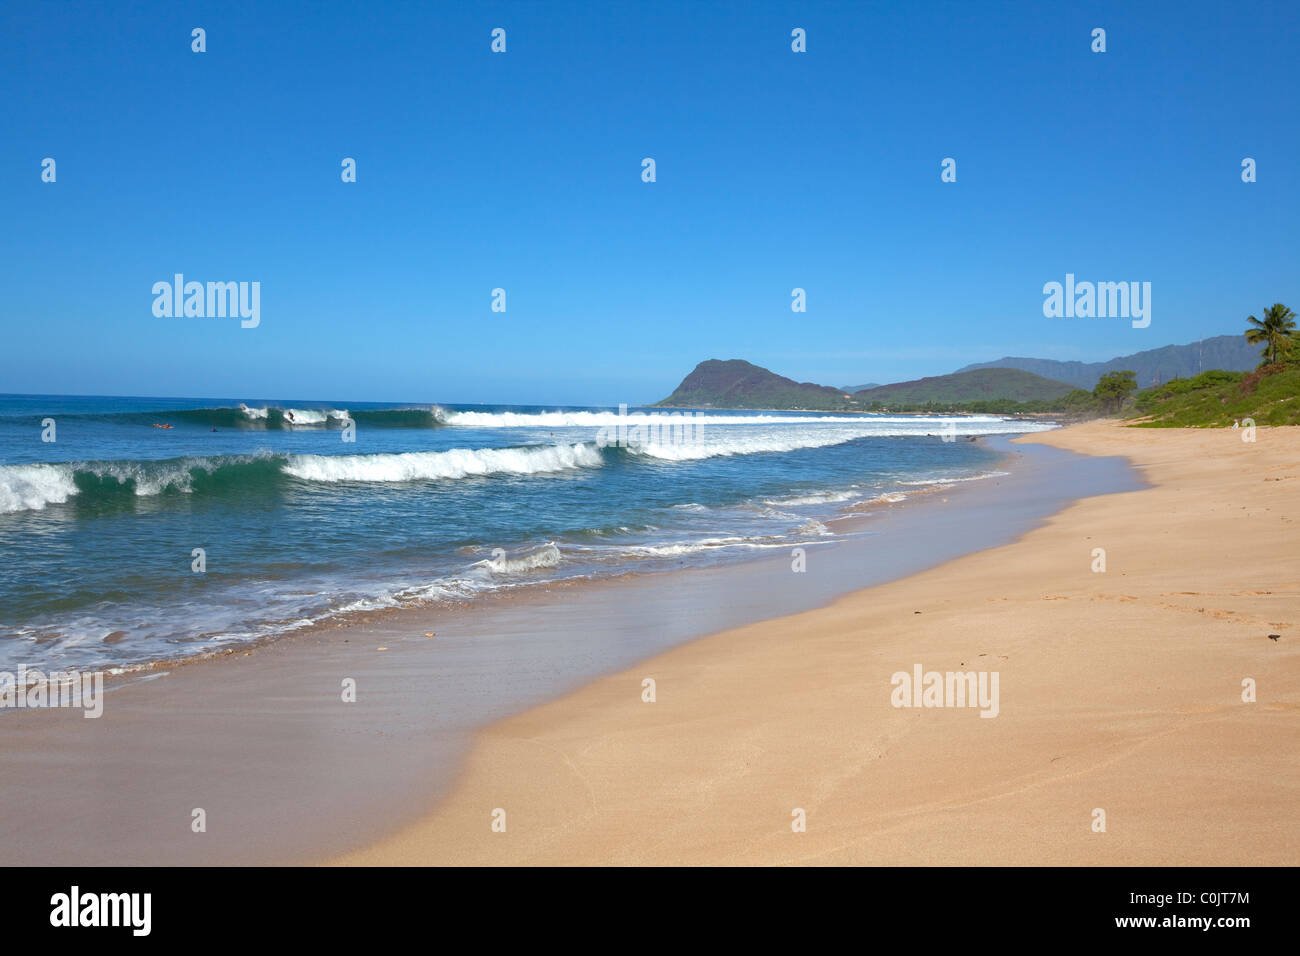 Tracks Beach, Leeward Coast, Oahu, Hawaii - Stock Image